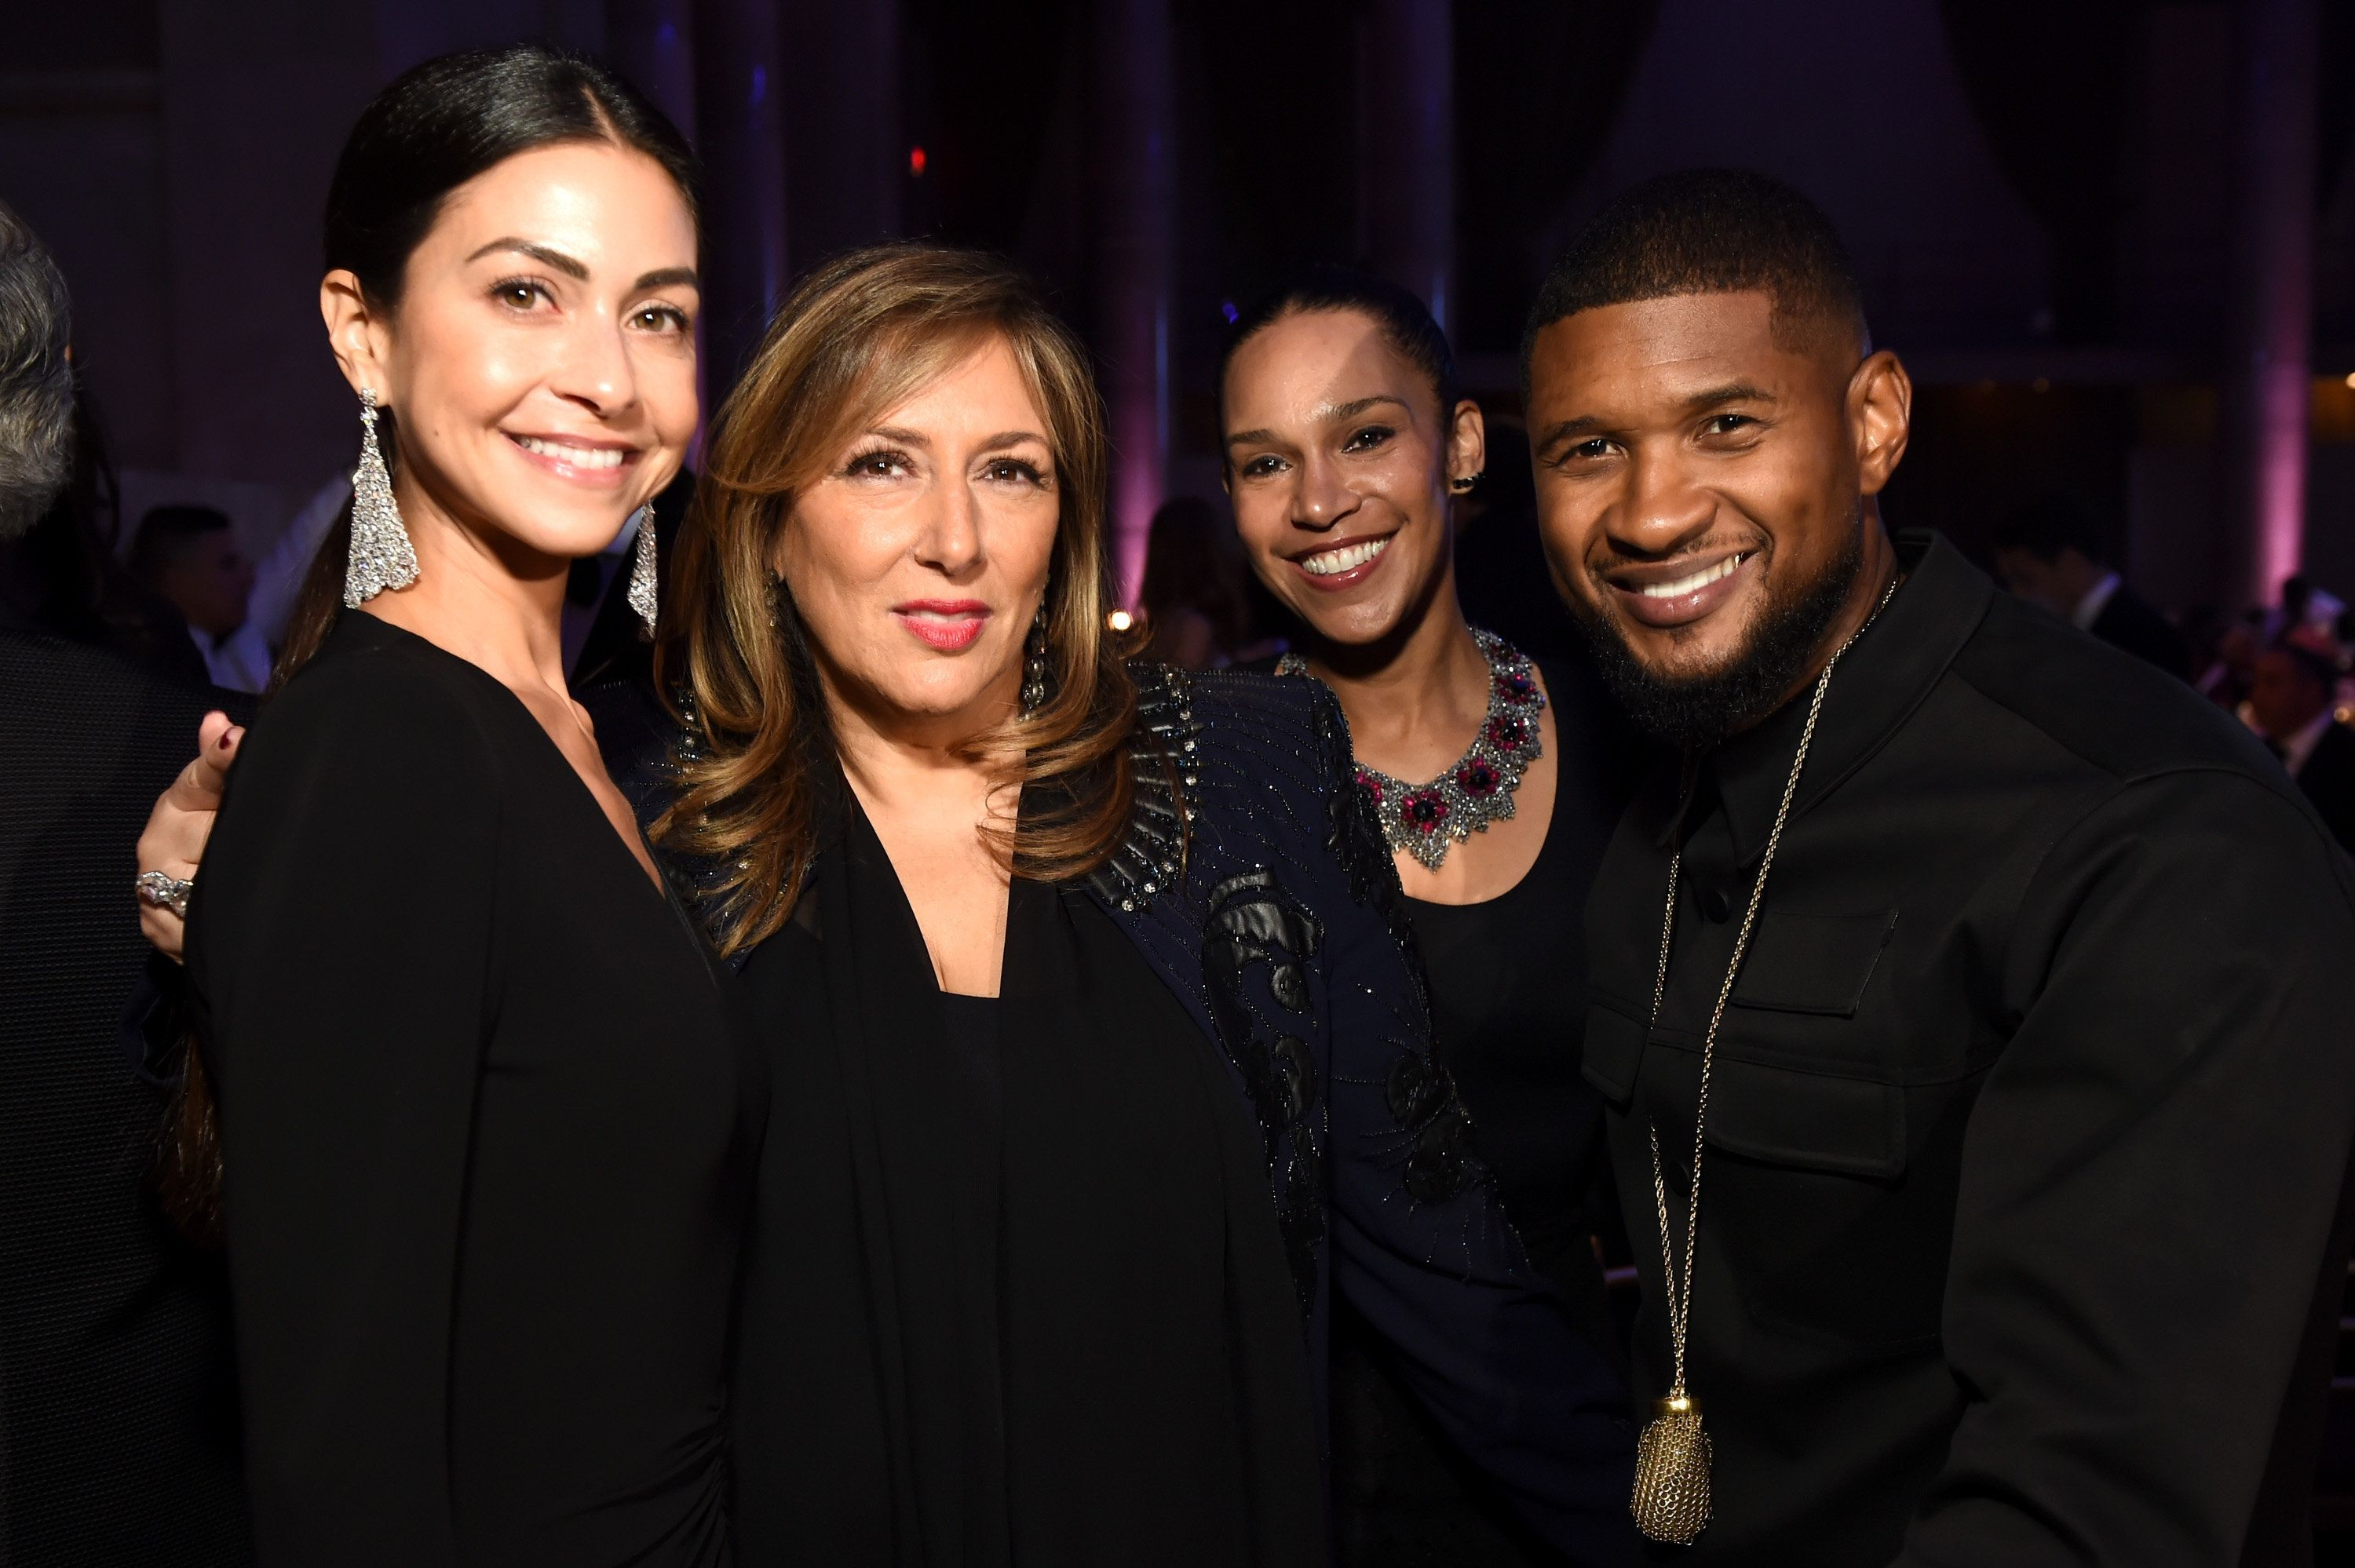 NEW YORK, NY - OCTOBER 19:  A guest, Lorraine Schwartz, Grace Miguel, and Usher attend Angel Ball 2015 hosted by Gabrielle's Angel Foundation at Cipriani Wall Street on October 19, 2015 in New York City.  (Photo by Dimitrios Kambouris/Getty Images for Gabrielle's Angel Foundation)